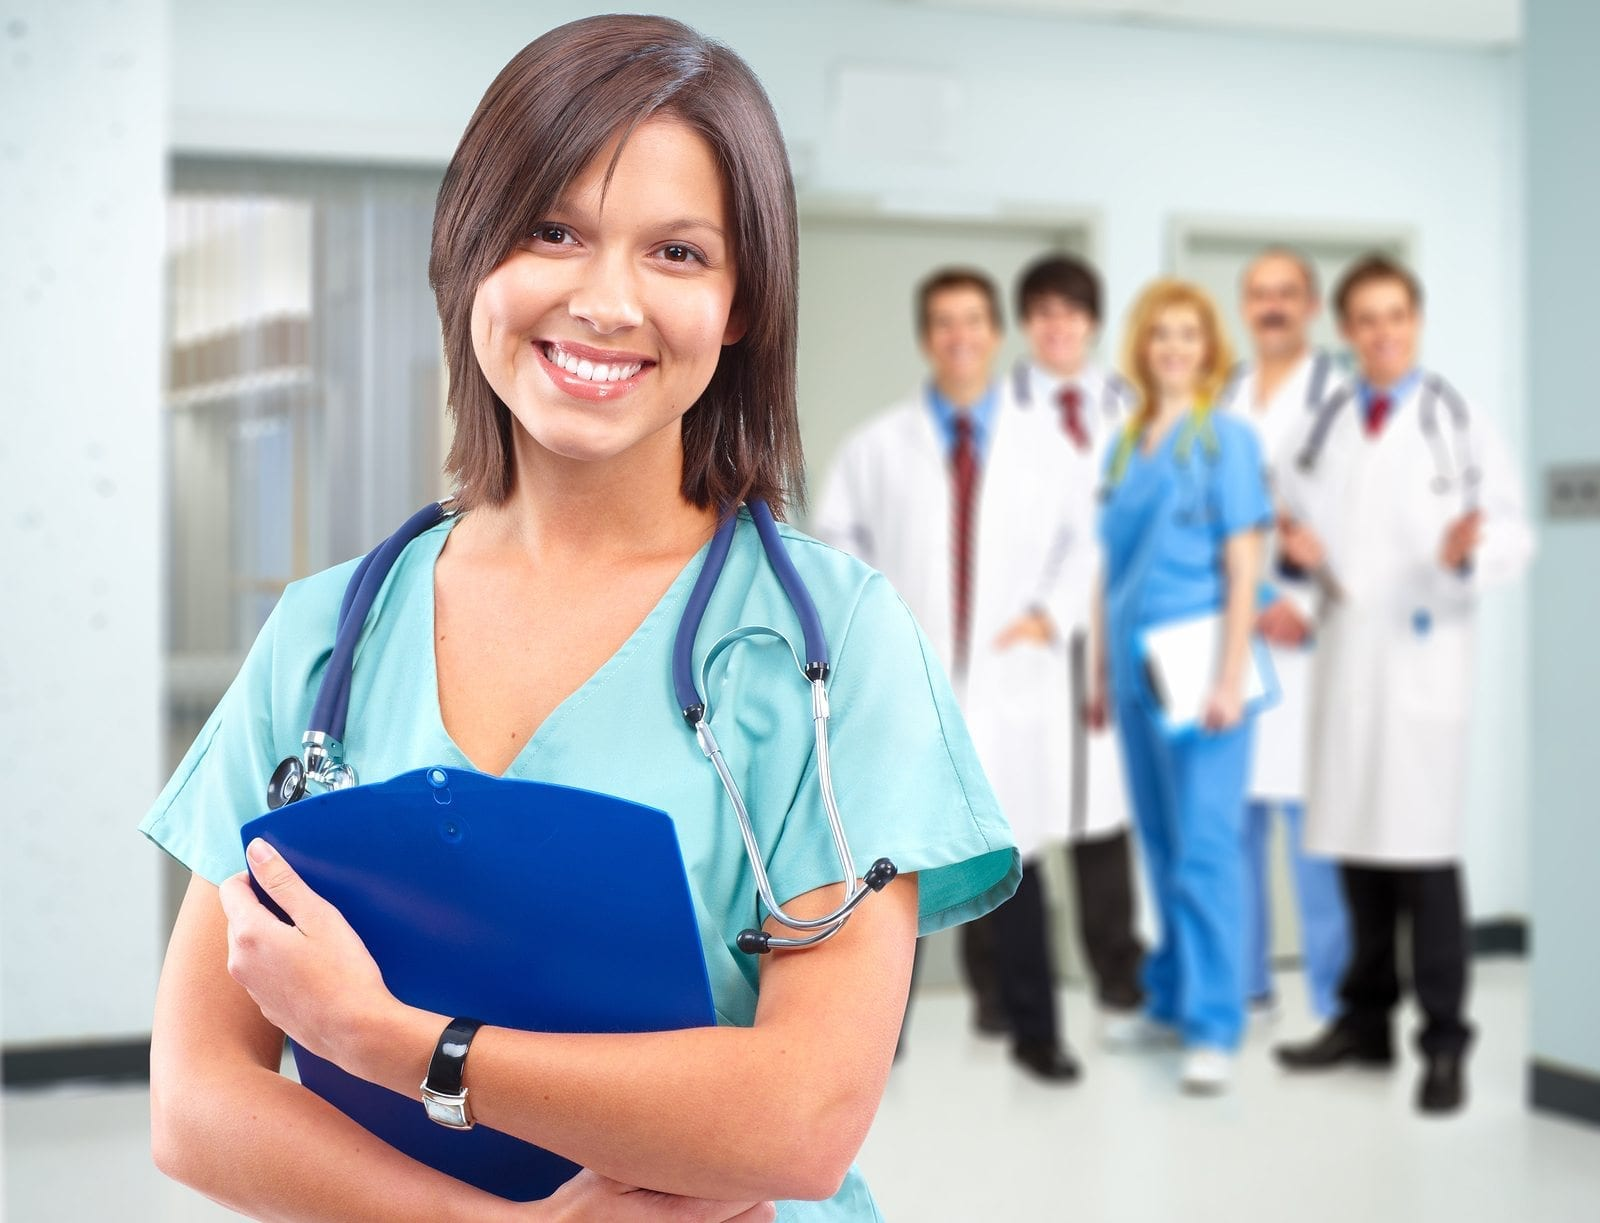 health care lpn A licensed practical nurse referred to as a licensed vocational nurse the continuing shortage of registered nurses in the australian public health care.